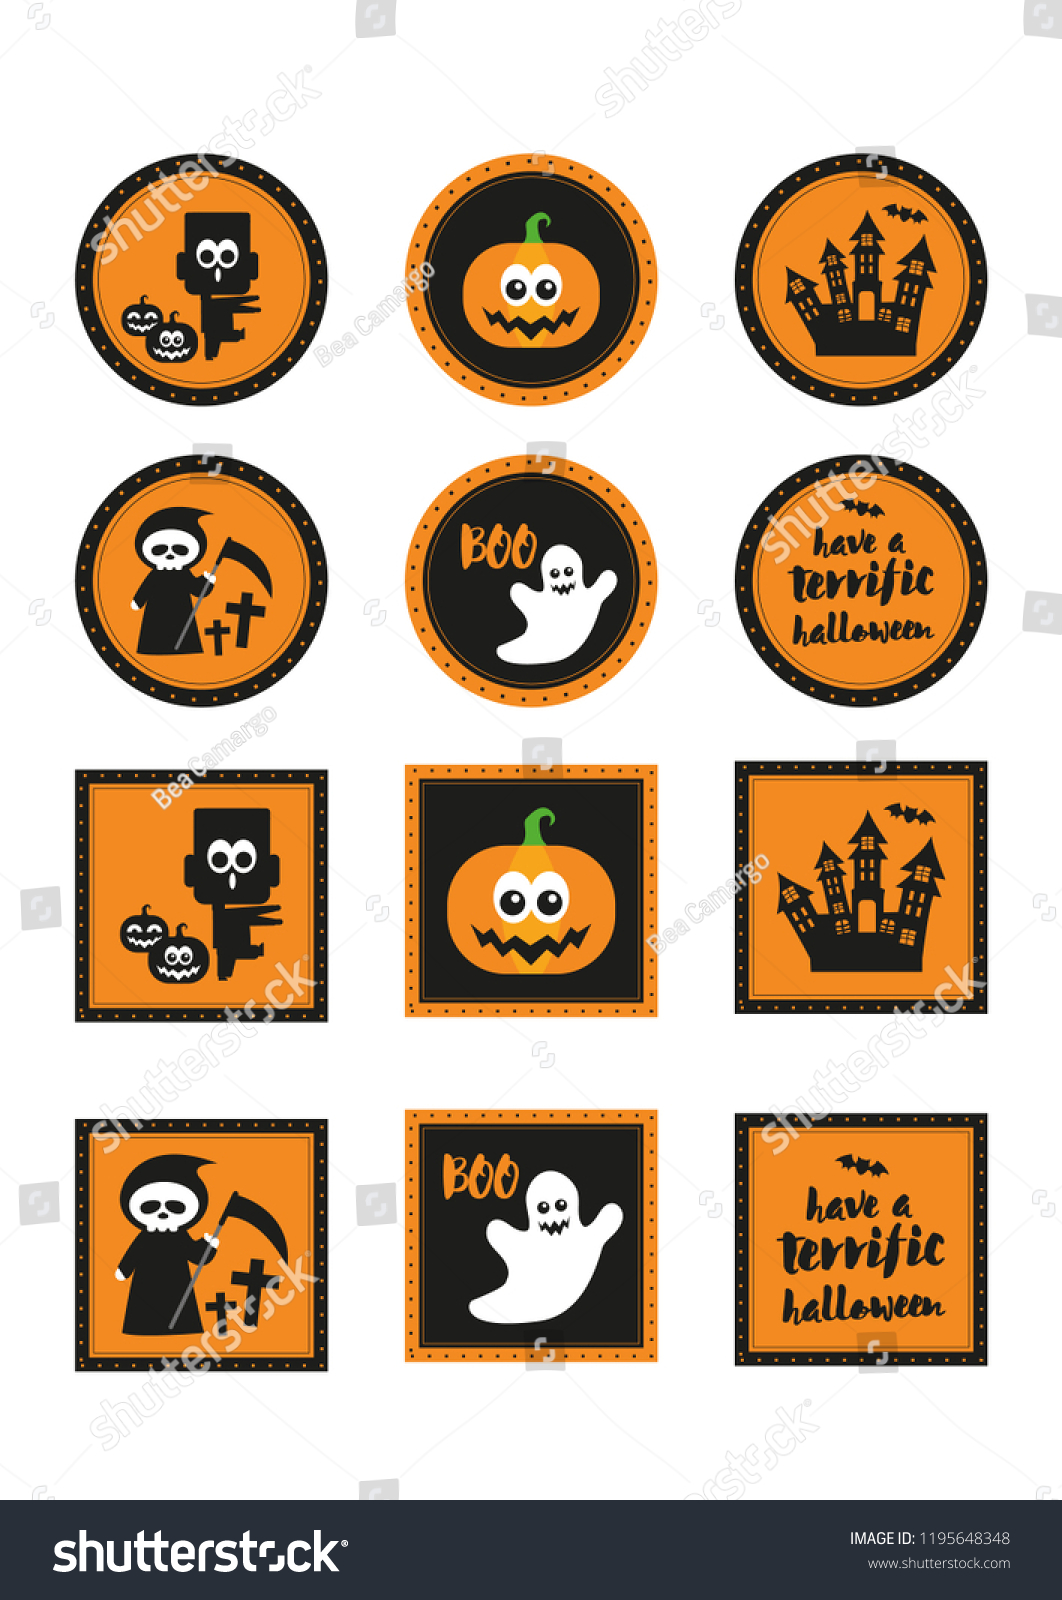 image regarding Halloween Stickers Printable called Cupcake Toppers Halloween Halloween Sweet Bar Inventory Vector